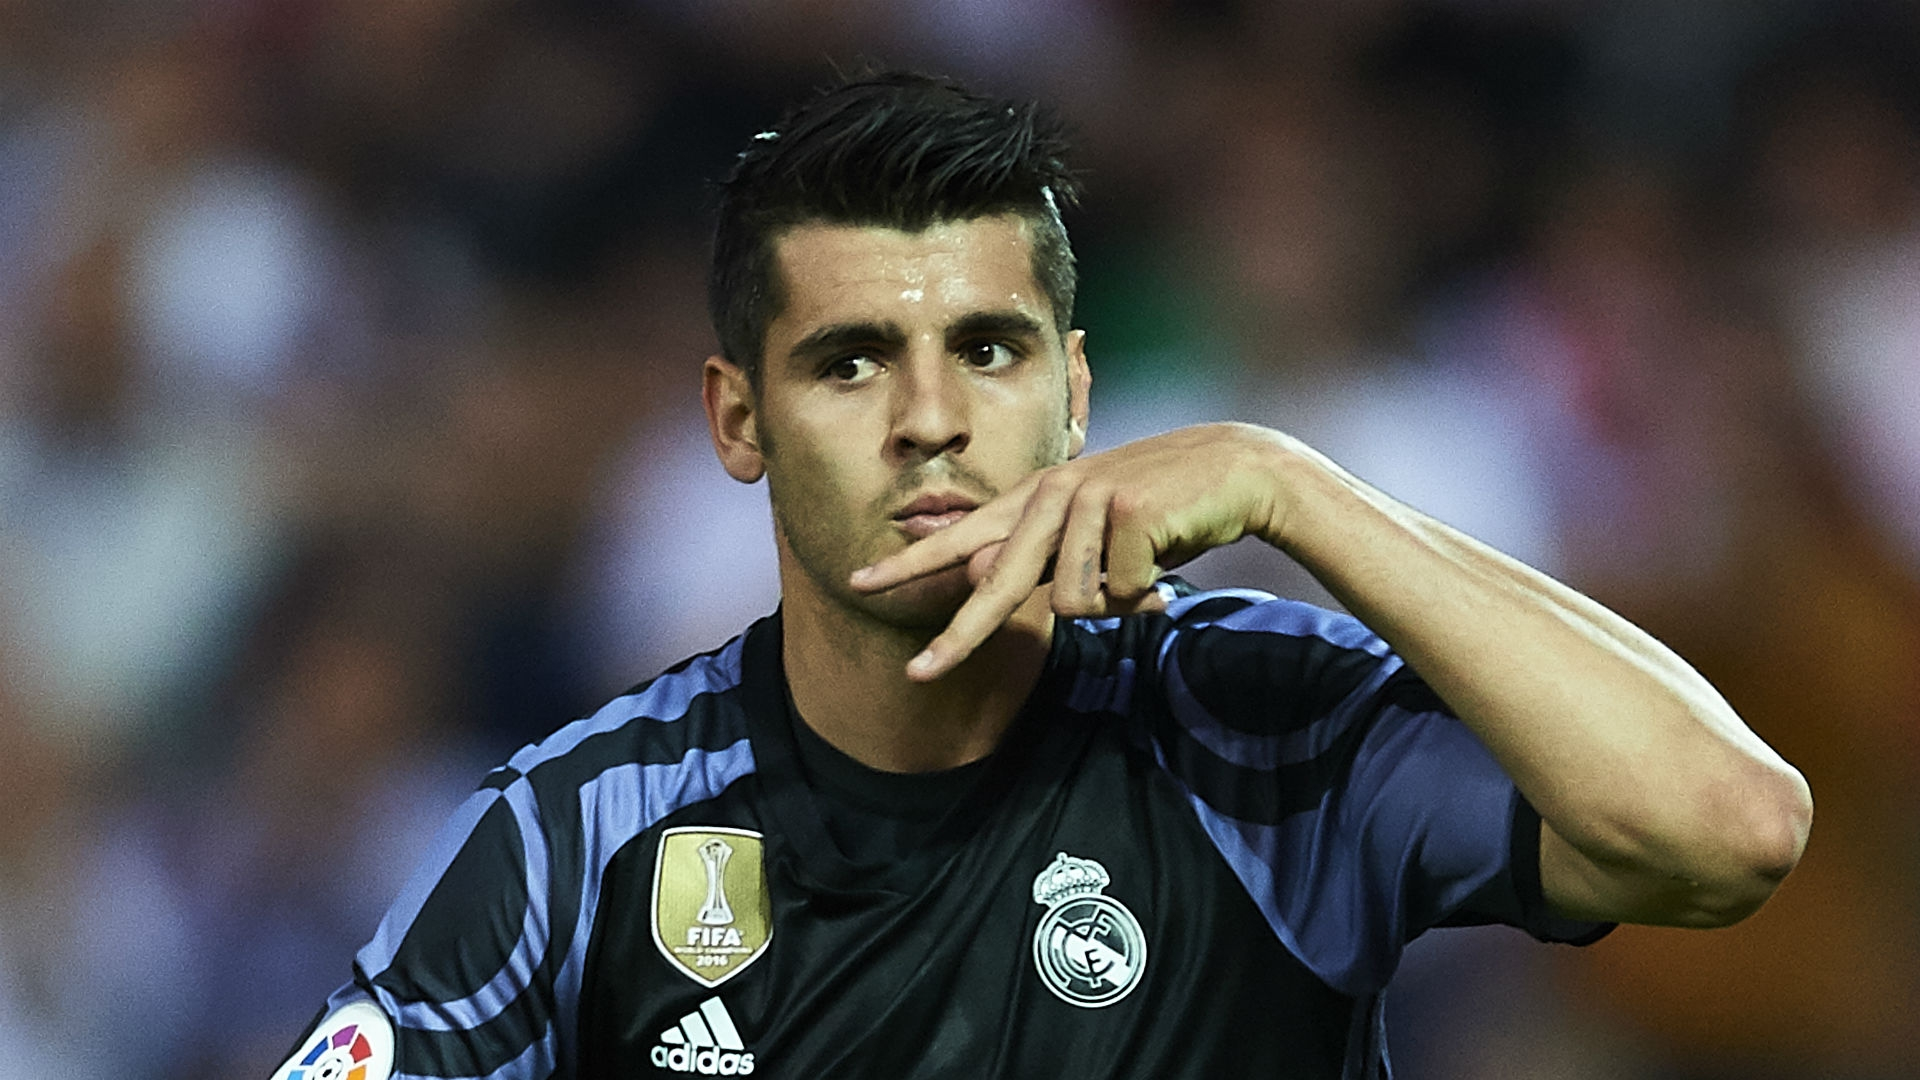 Alvaro Morata is certainly a very good forward. If he is to join Chelsea, which seems very likely at this stage, his responsibilities in the team will increase a great deal.